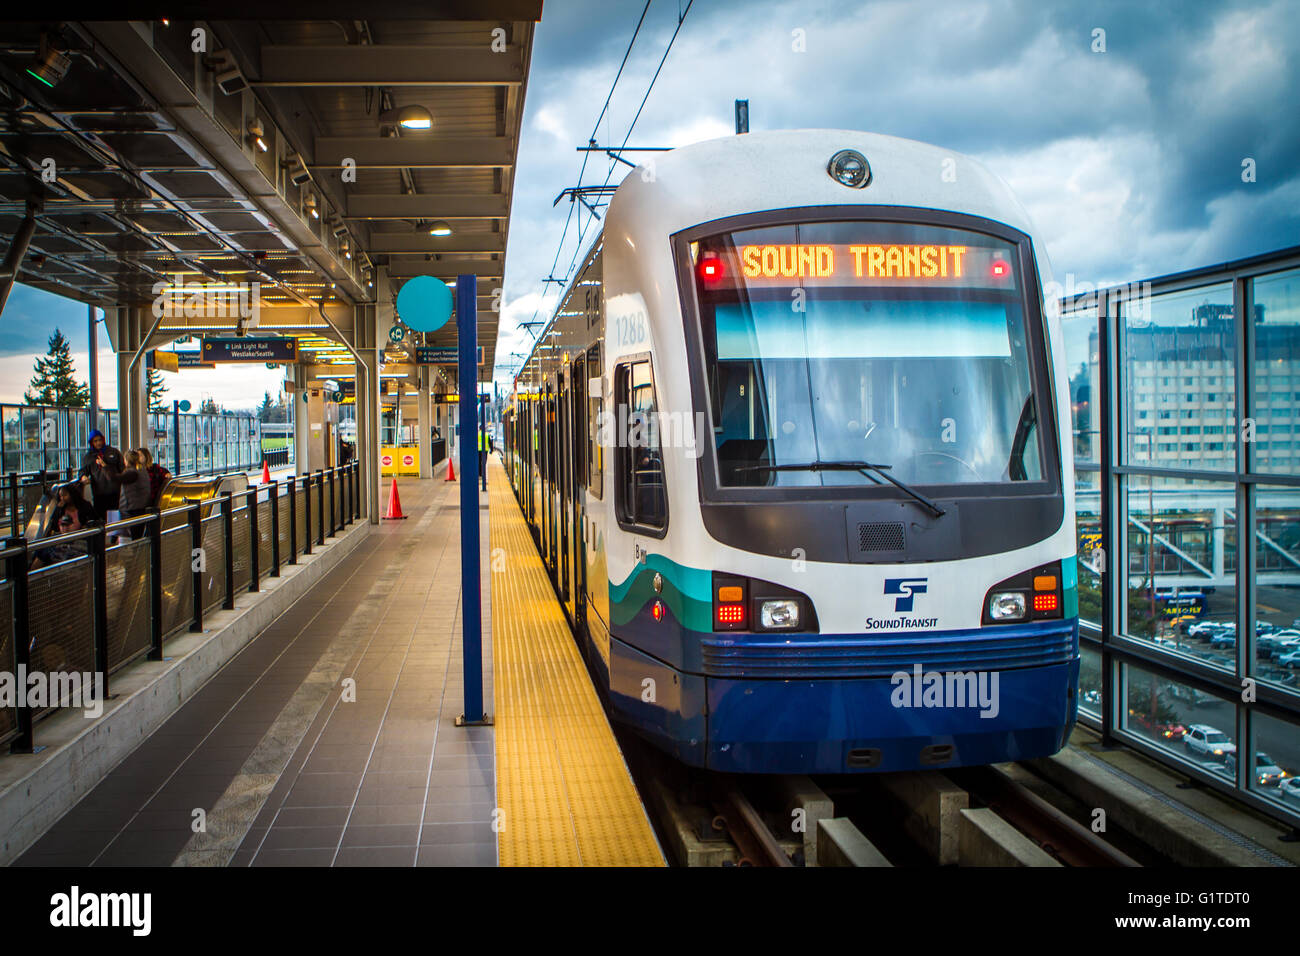 A Sound Transit Link light rail train at the SeaTac/Airport